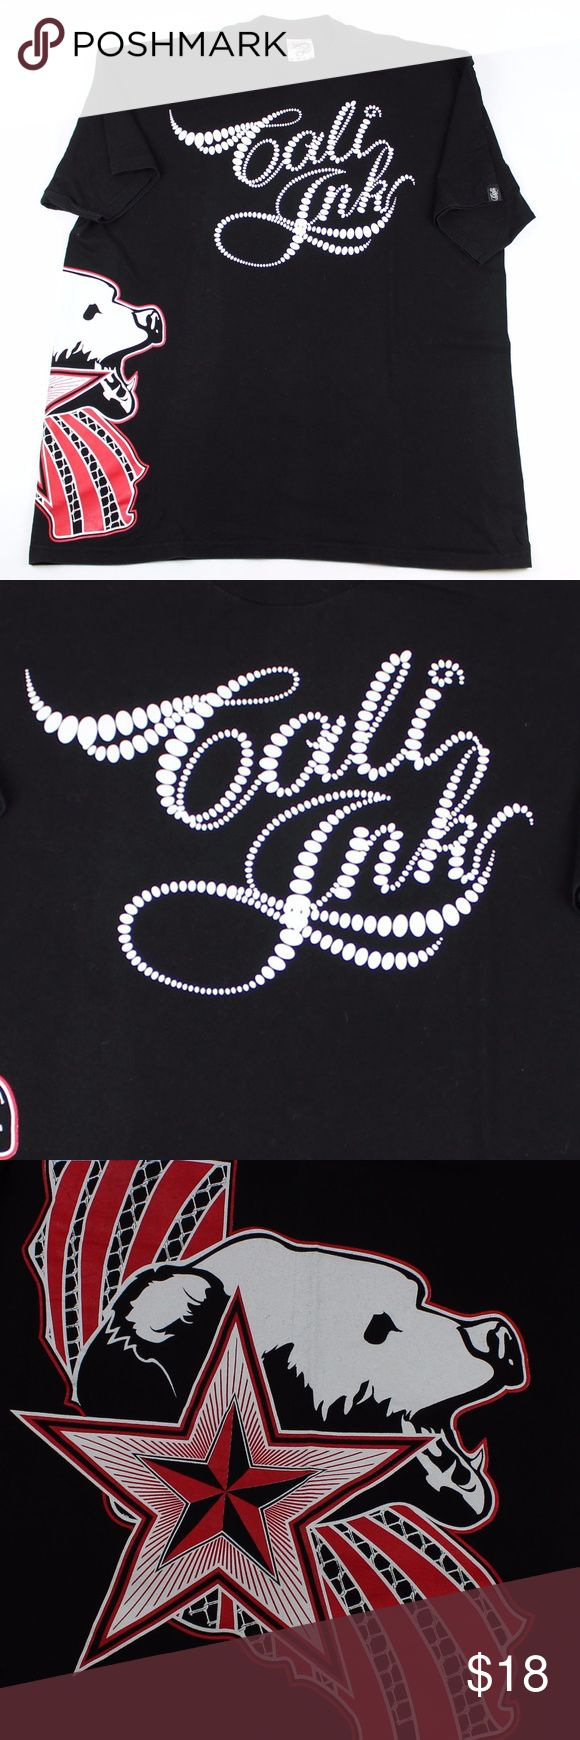 """Cali Ink Black Graphic T-shirt Black Cali Ink Men's Black T-shirt  T-shirt is black and with the words """"Cali Ink"""" in White Ink.  Shirt also has the graphic California Star and State Bear and the left sleeve has the Cali Ink logo tag on it. Shirt is excellent condition, no cracking or fading on the graphics. Size 3XL - 100% Cotton Measurements: 26"""" - pit to pit 33"""" - shoulder to hem Cali Ink Shirts Tees - Short Sleeve"""